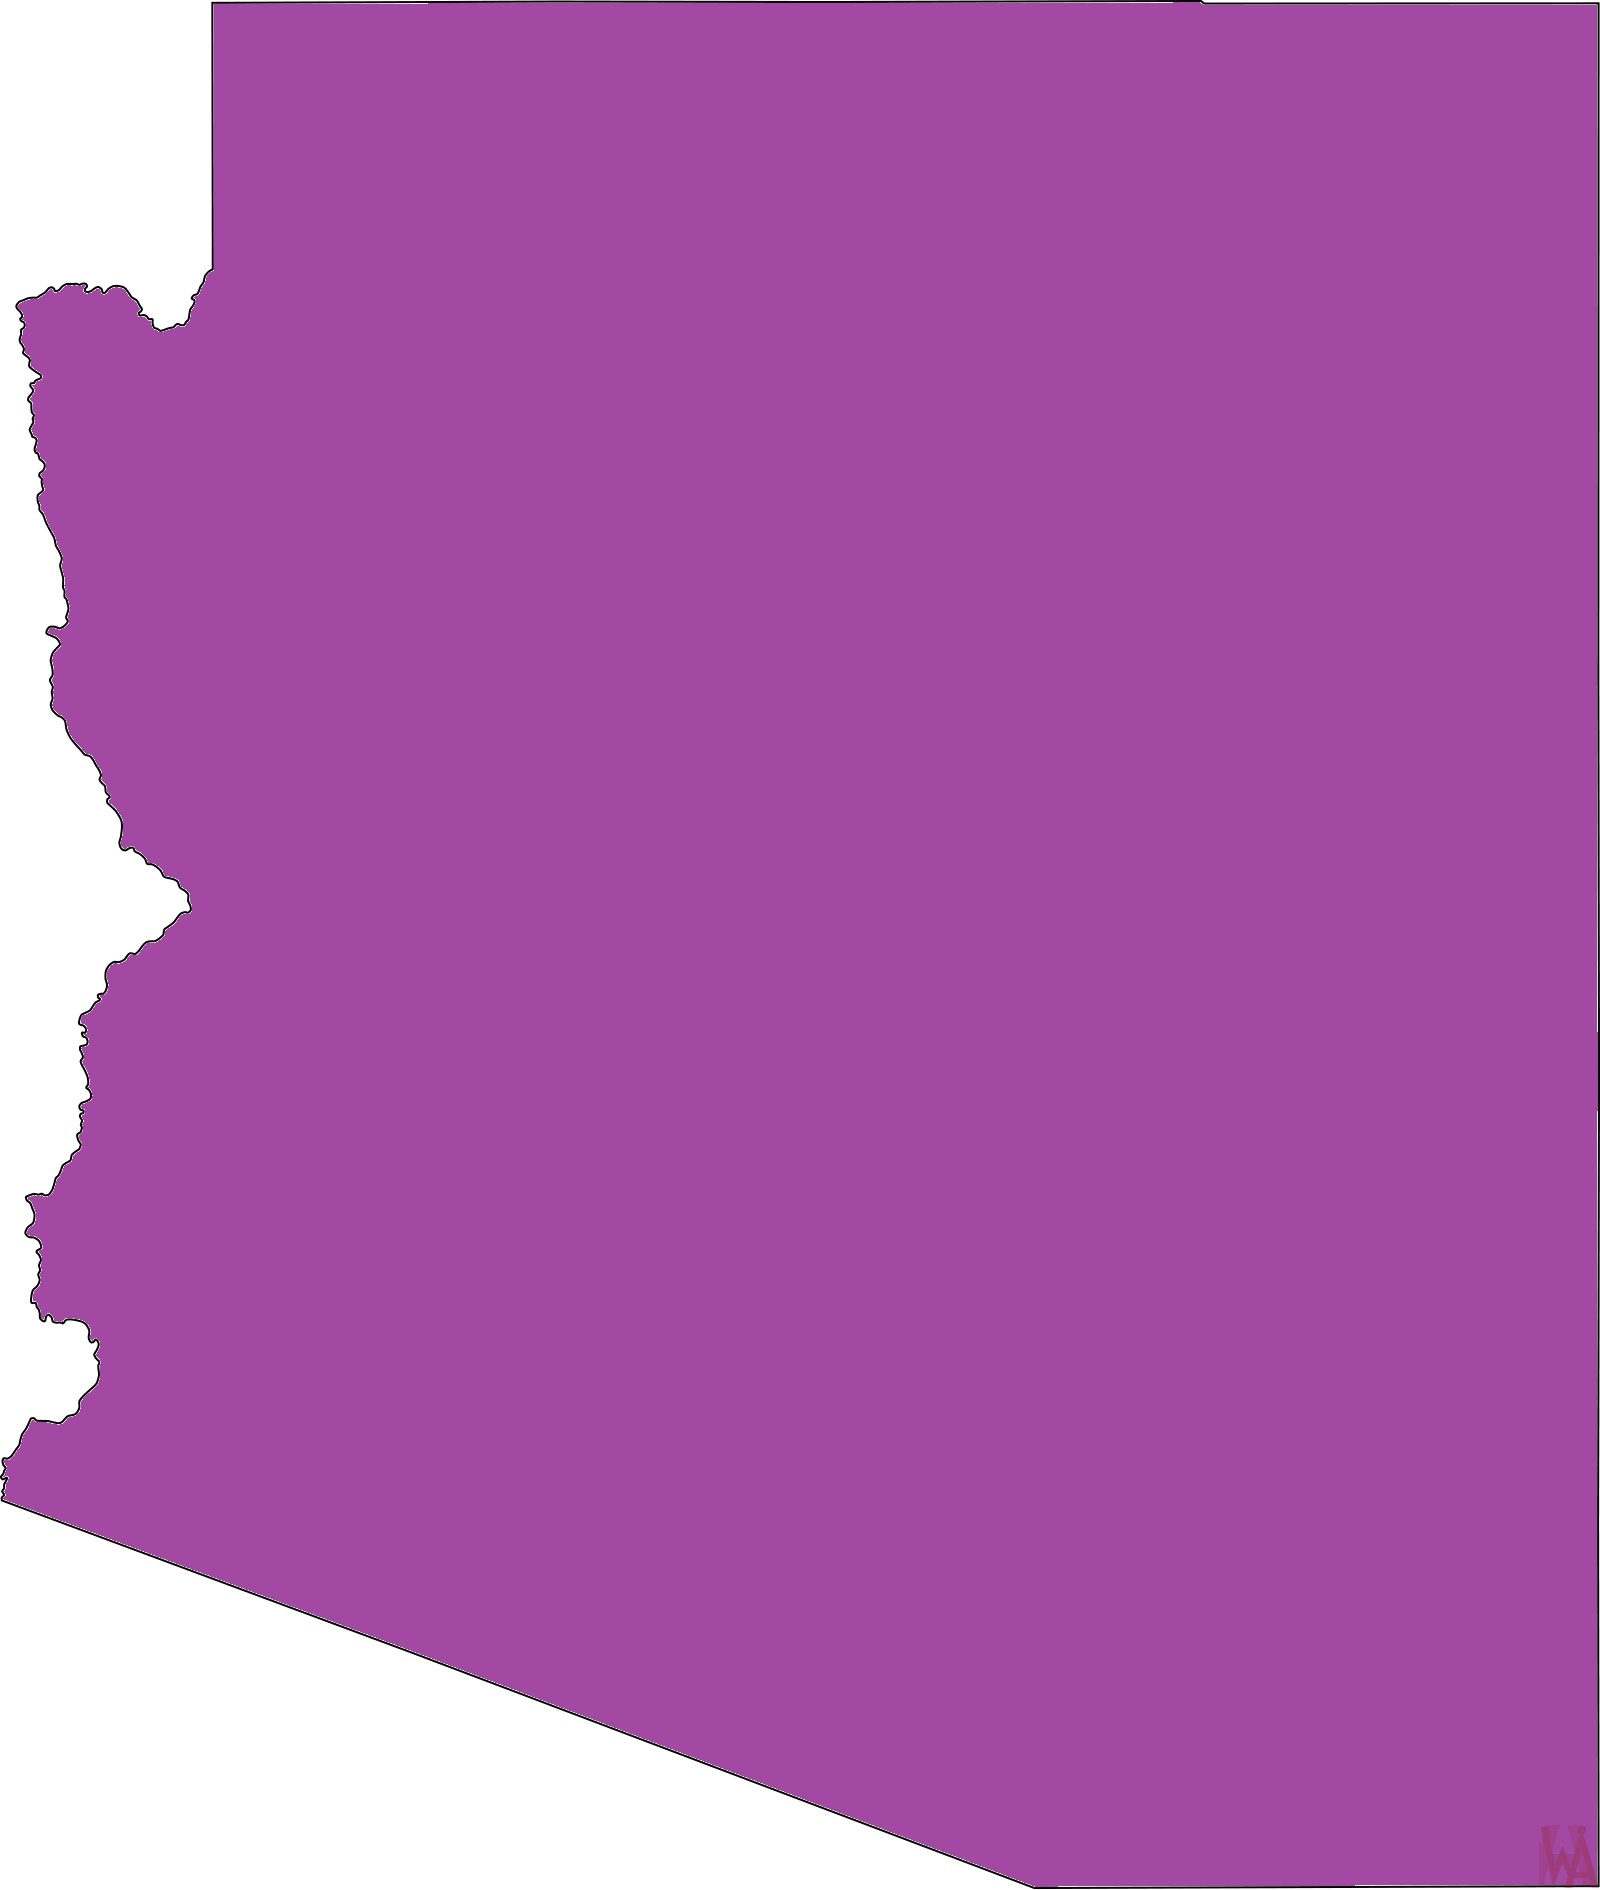 Arizona Blank Outline Map |  Blank Outline Map of Arizona – 3